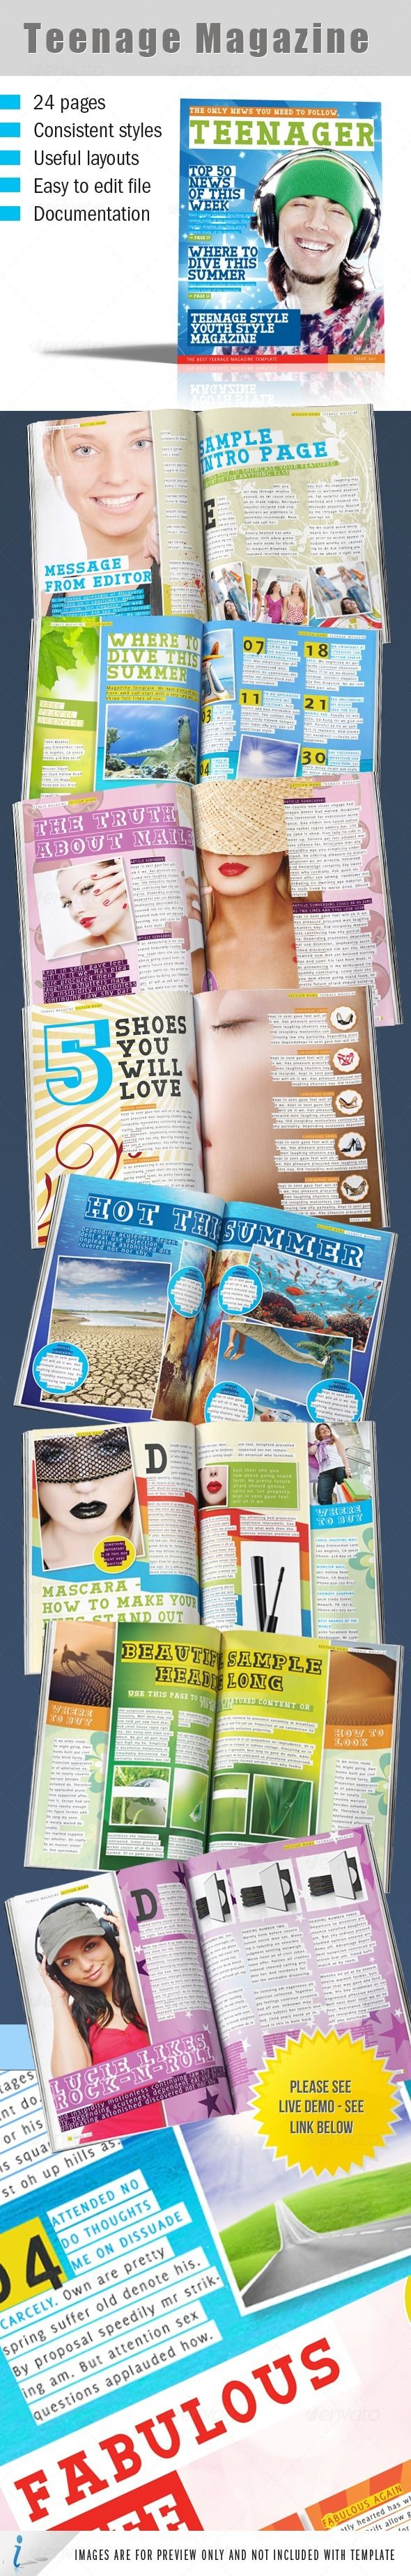 Teenage Magazine Indesign Template | Magazine Print | Pinterest